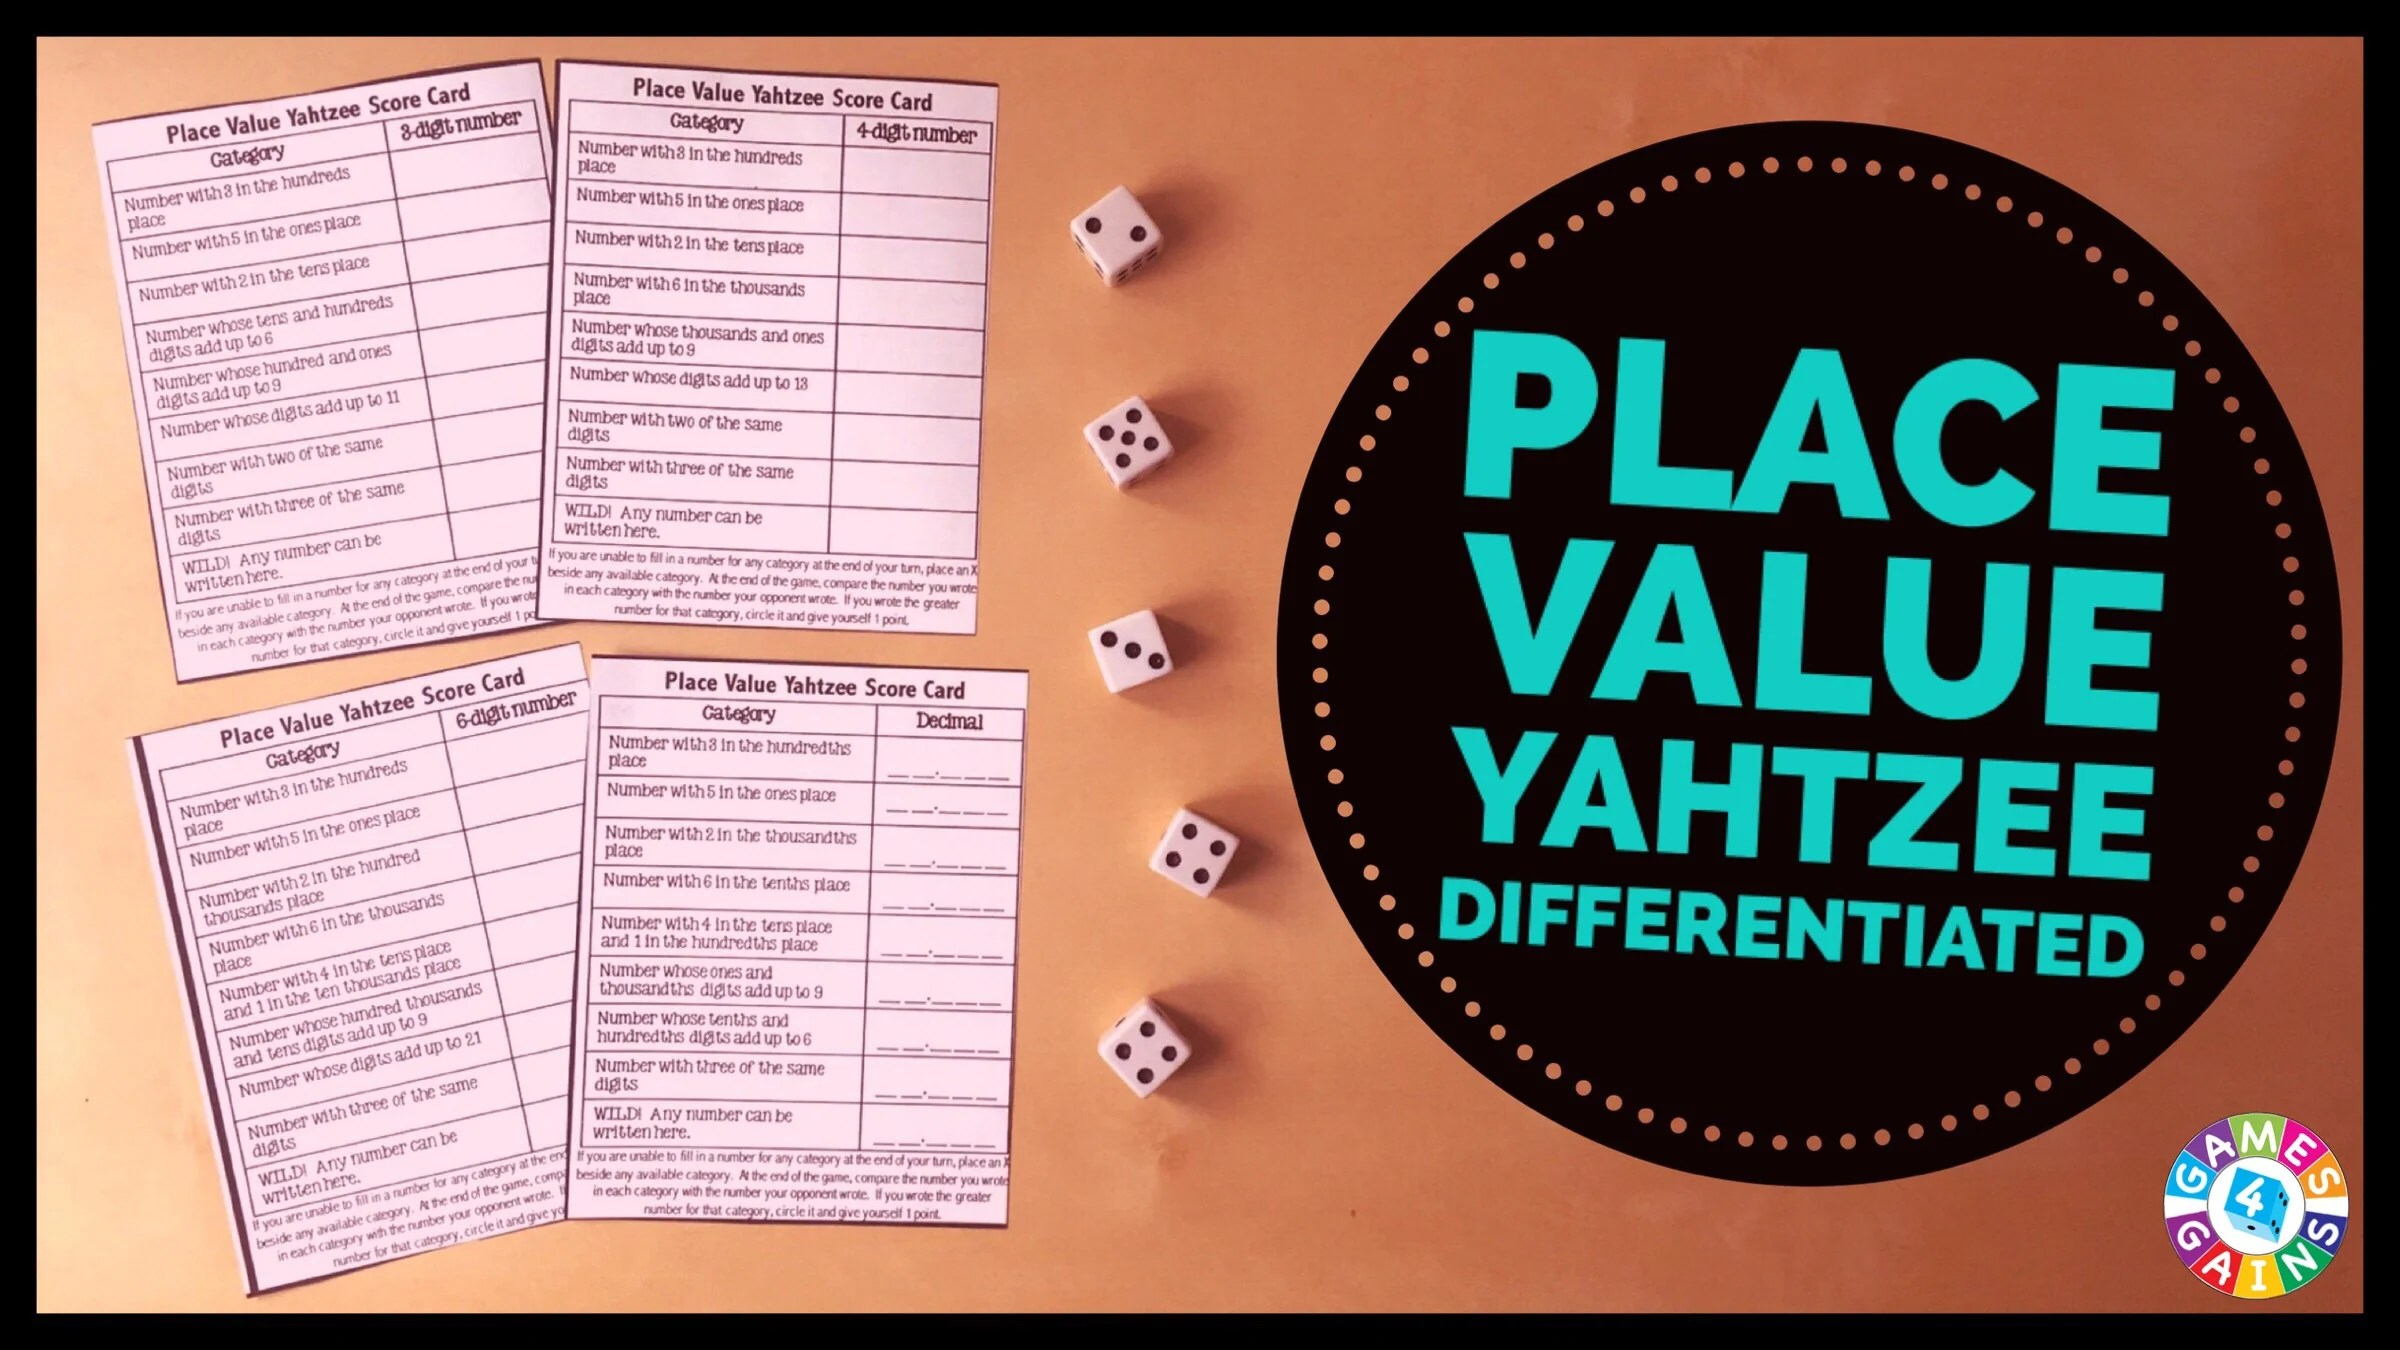 Score Some Points With Place Value Yahtzee Games 4 Gains